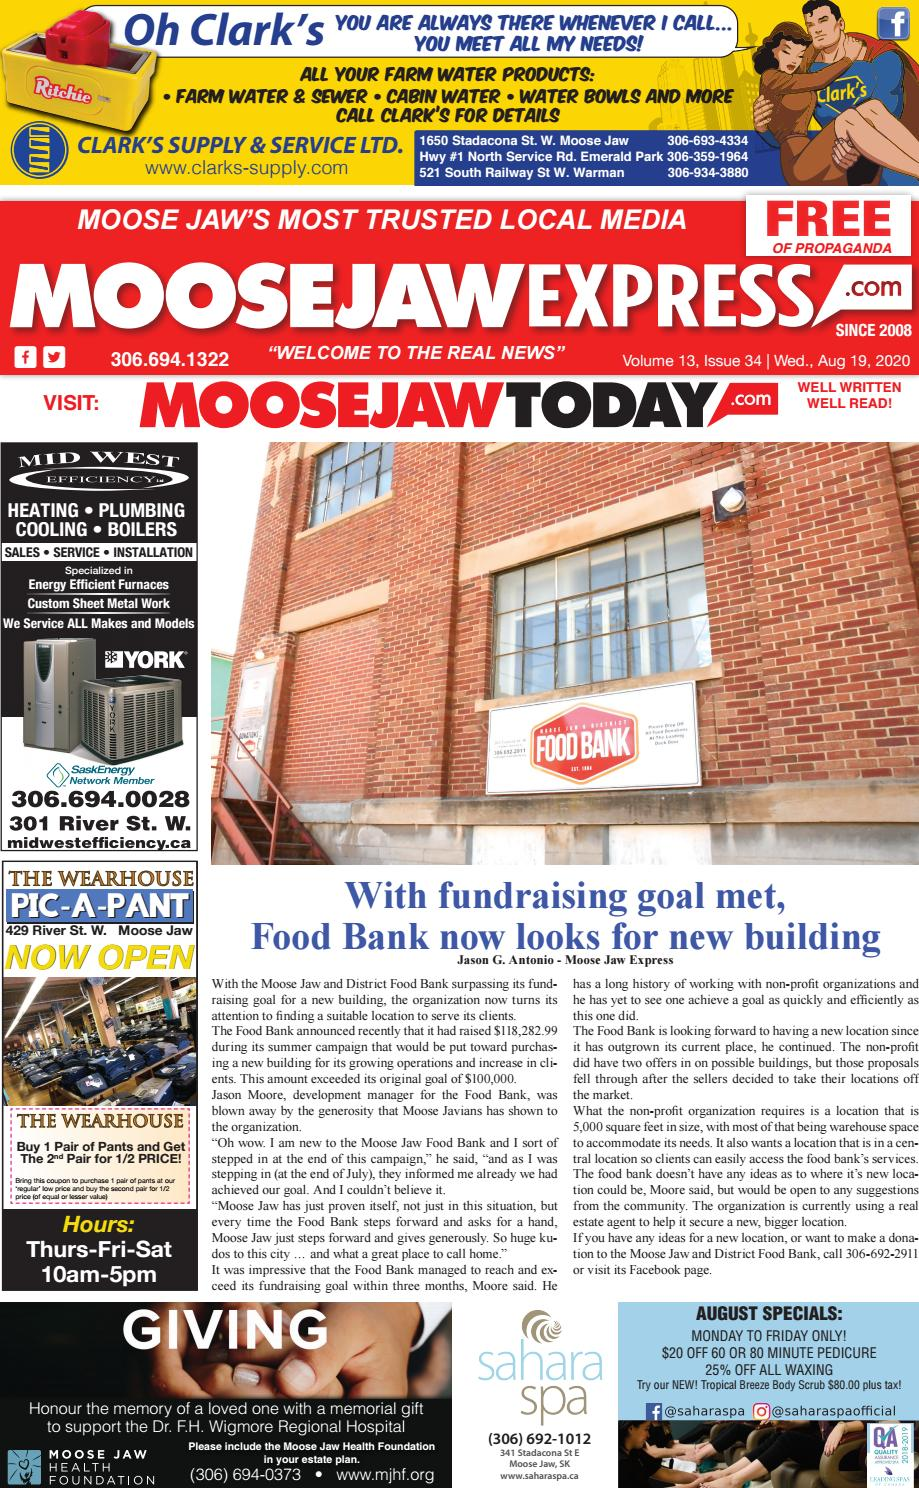 Moose Jaw Express August 19th 2020 By Moose Jaw Express Issuu